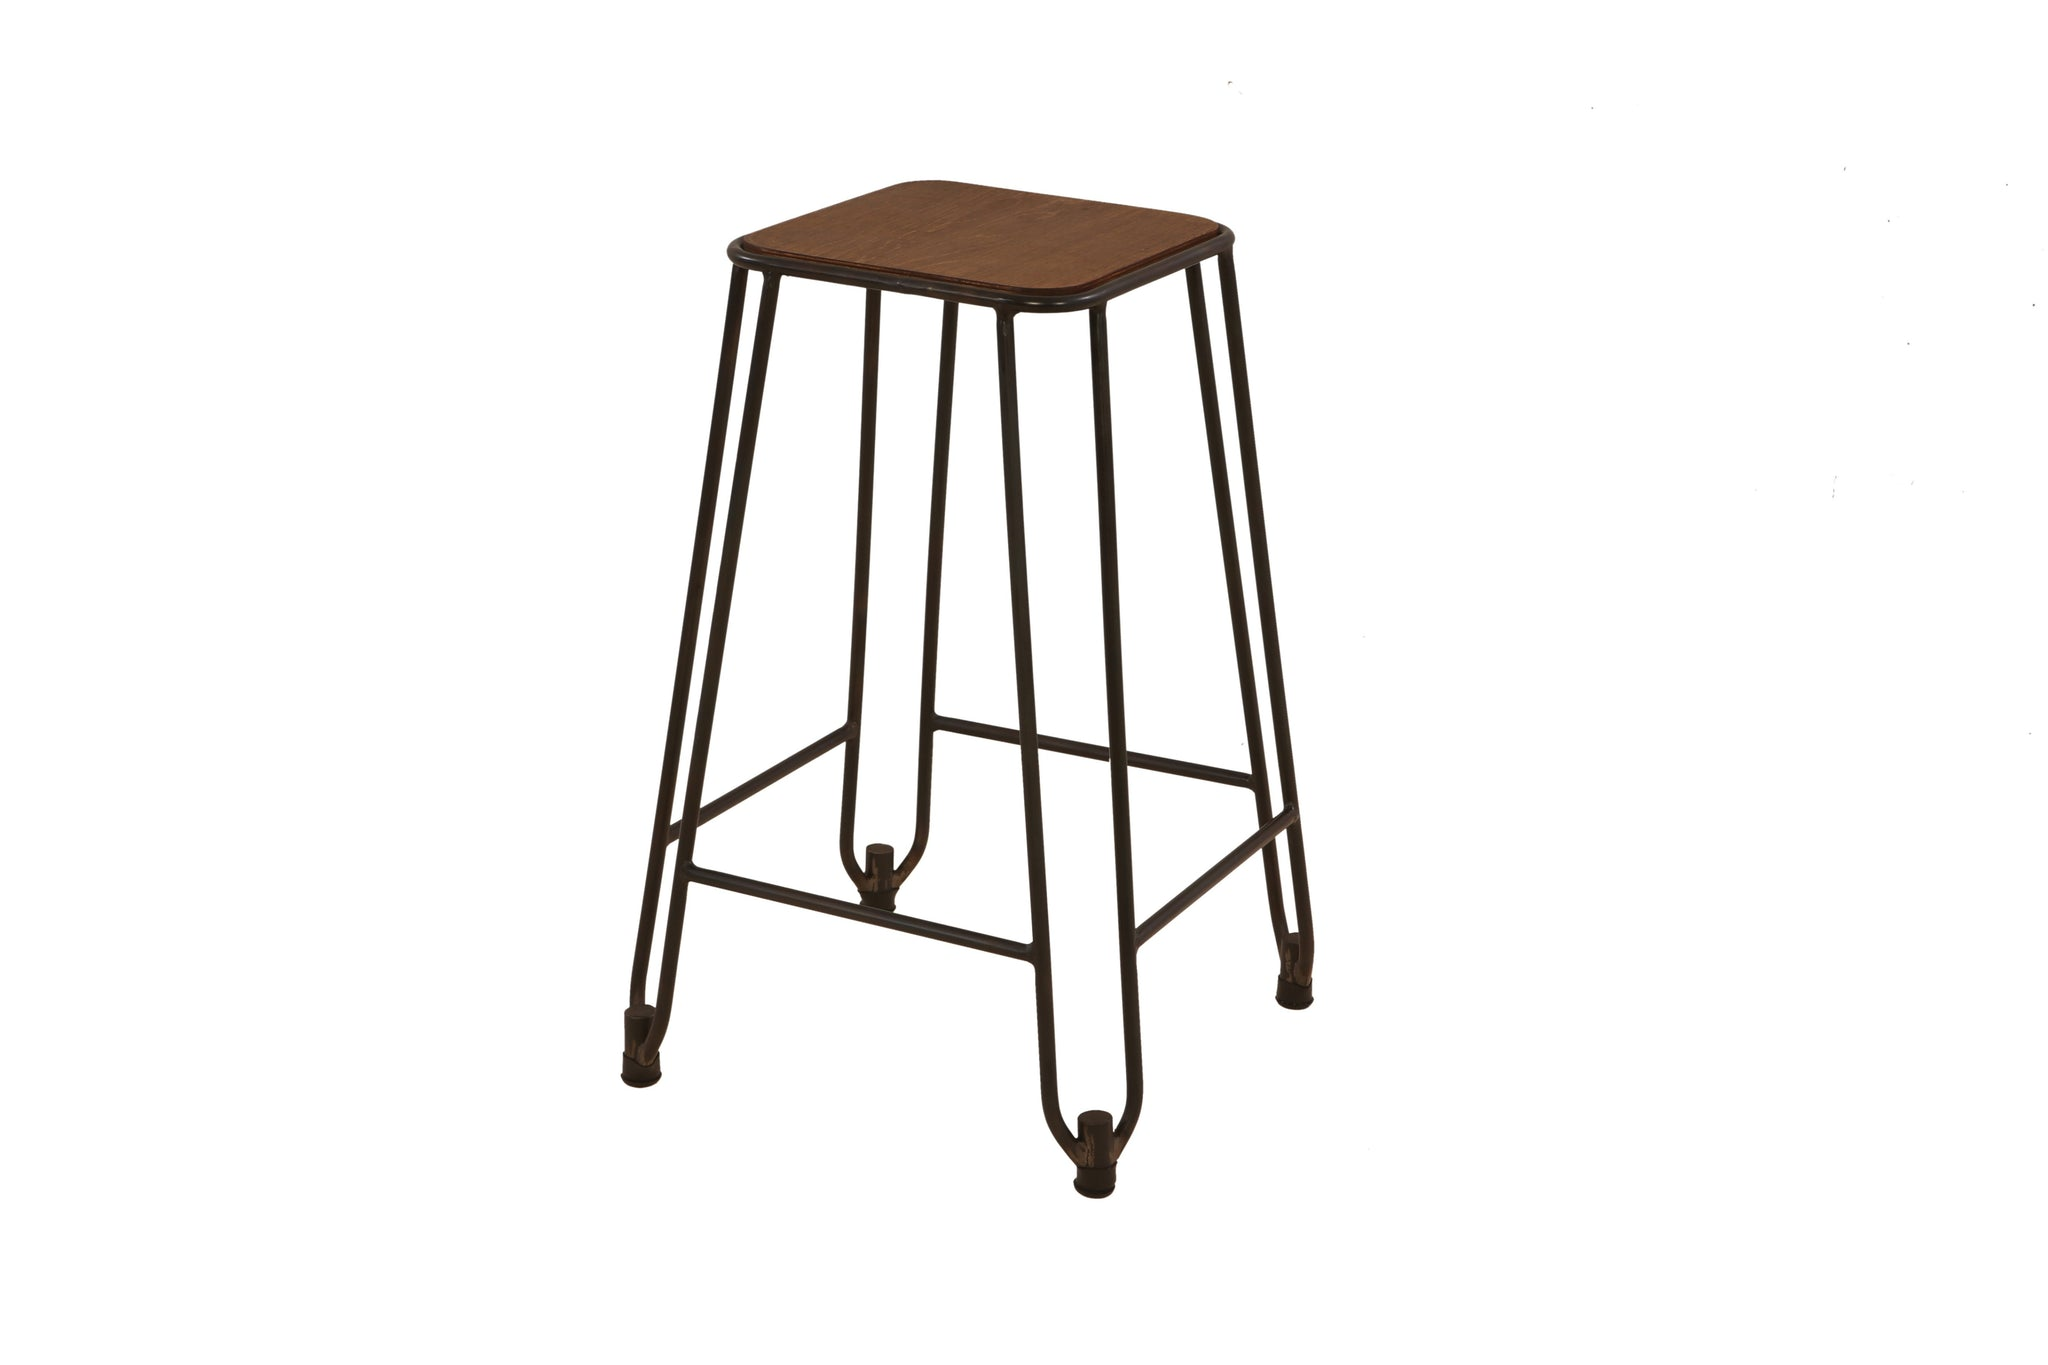 Birkin Kitchen Counter Height Stool x 2